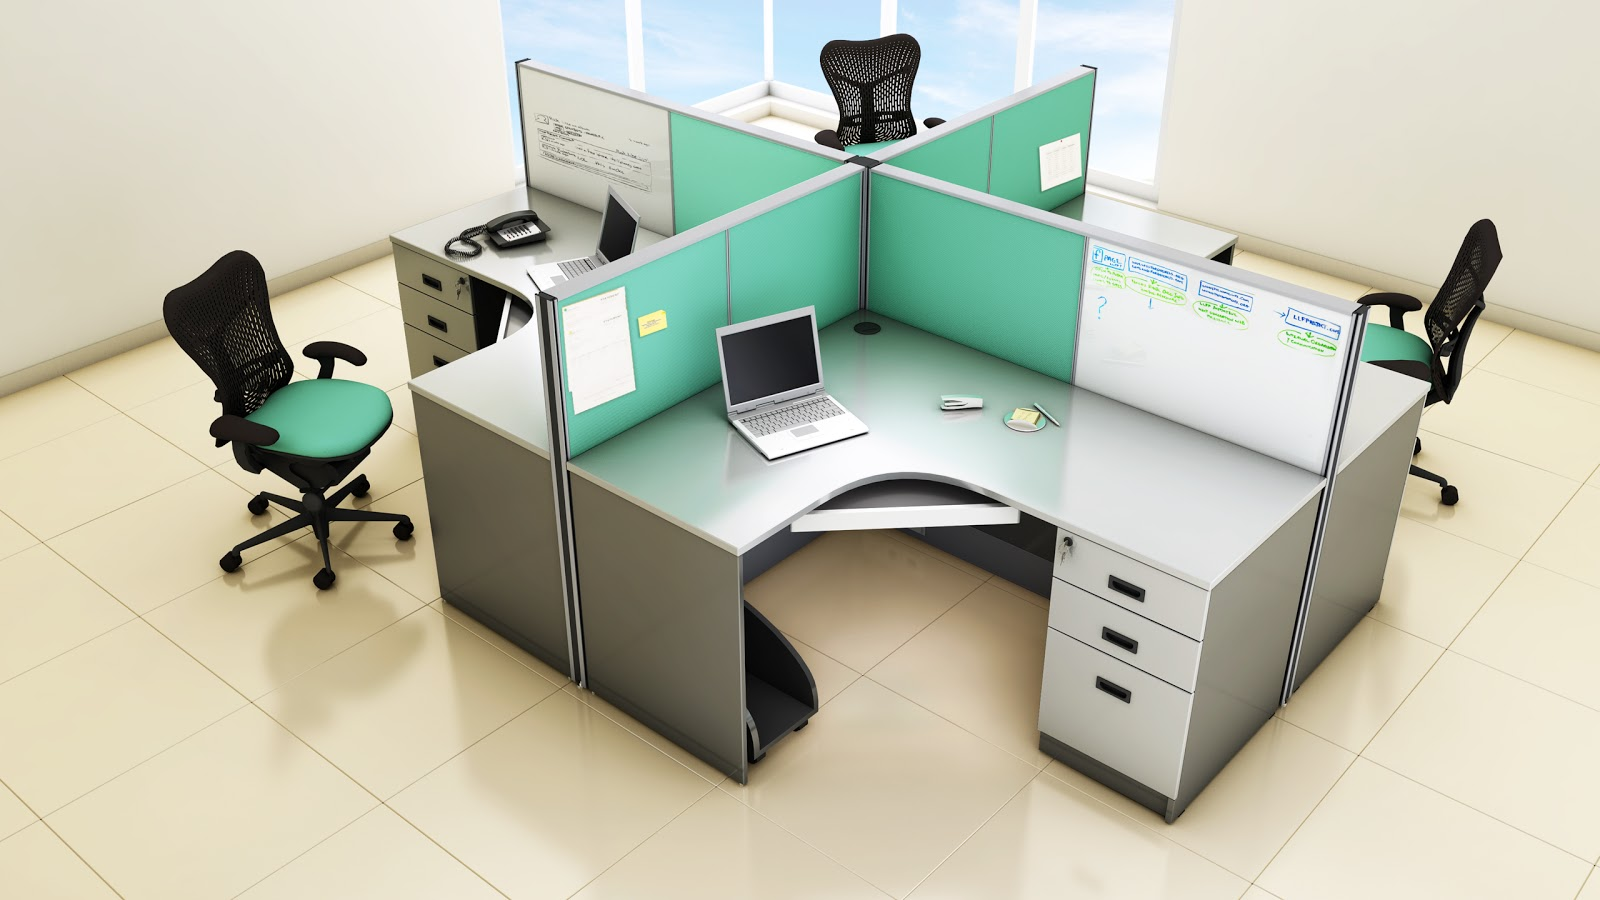 Office Furniture Manufacture of Indore: Trends in modular office